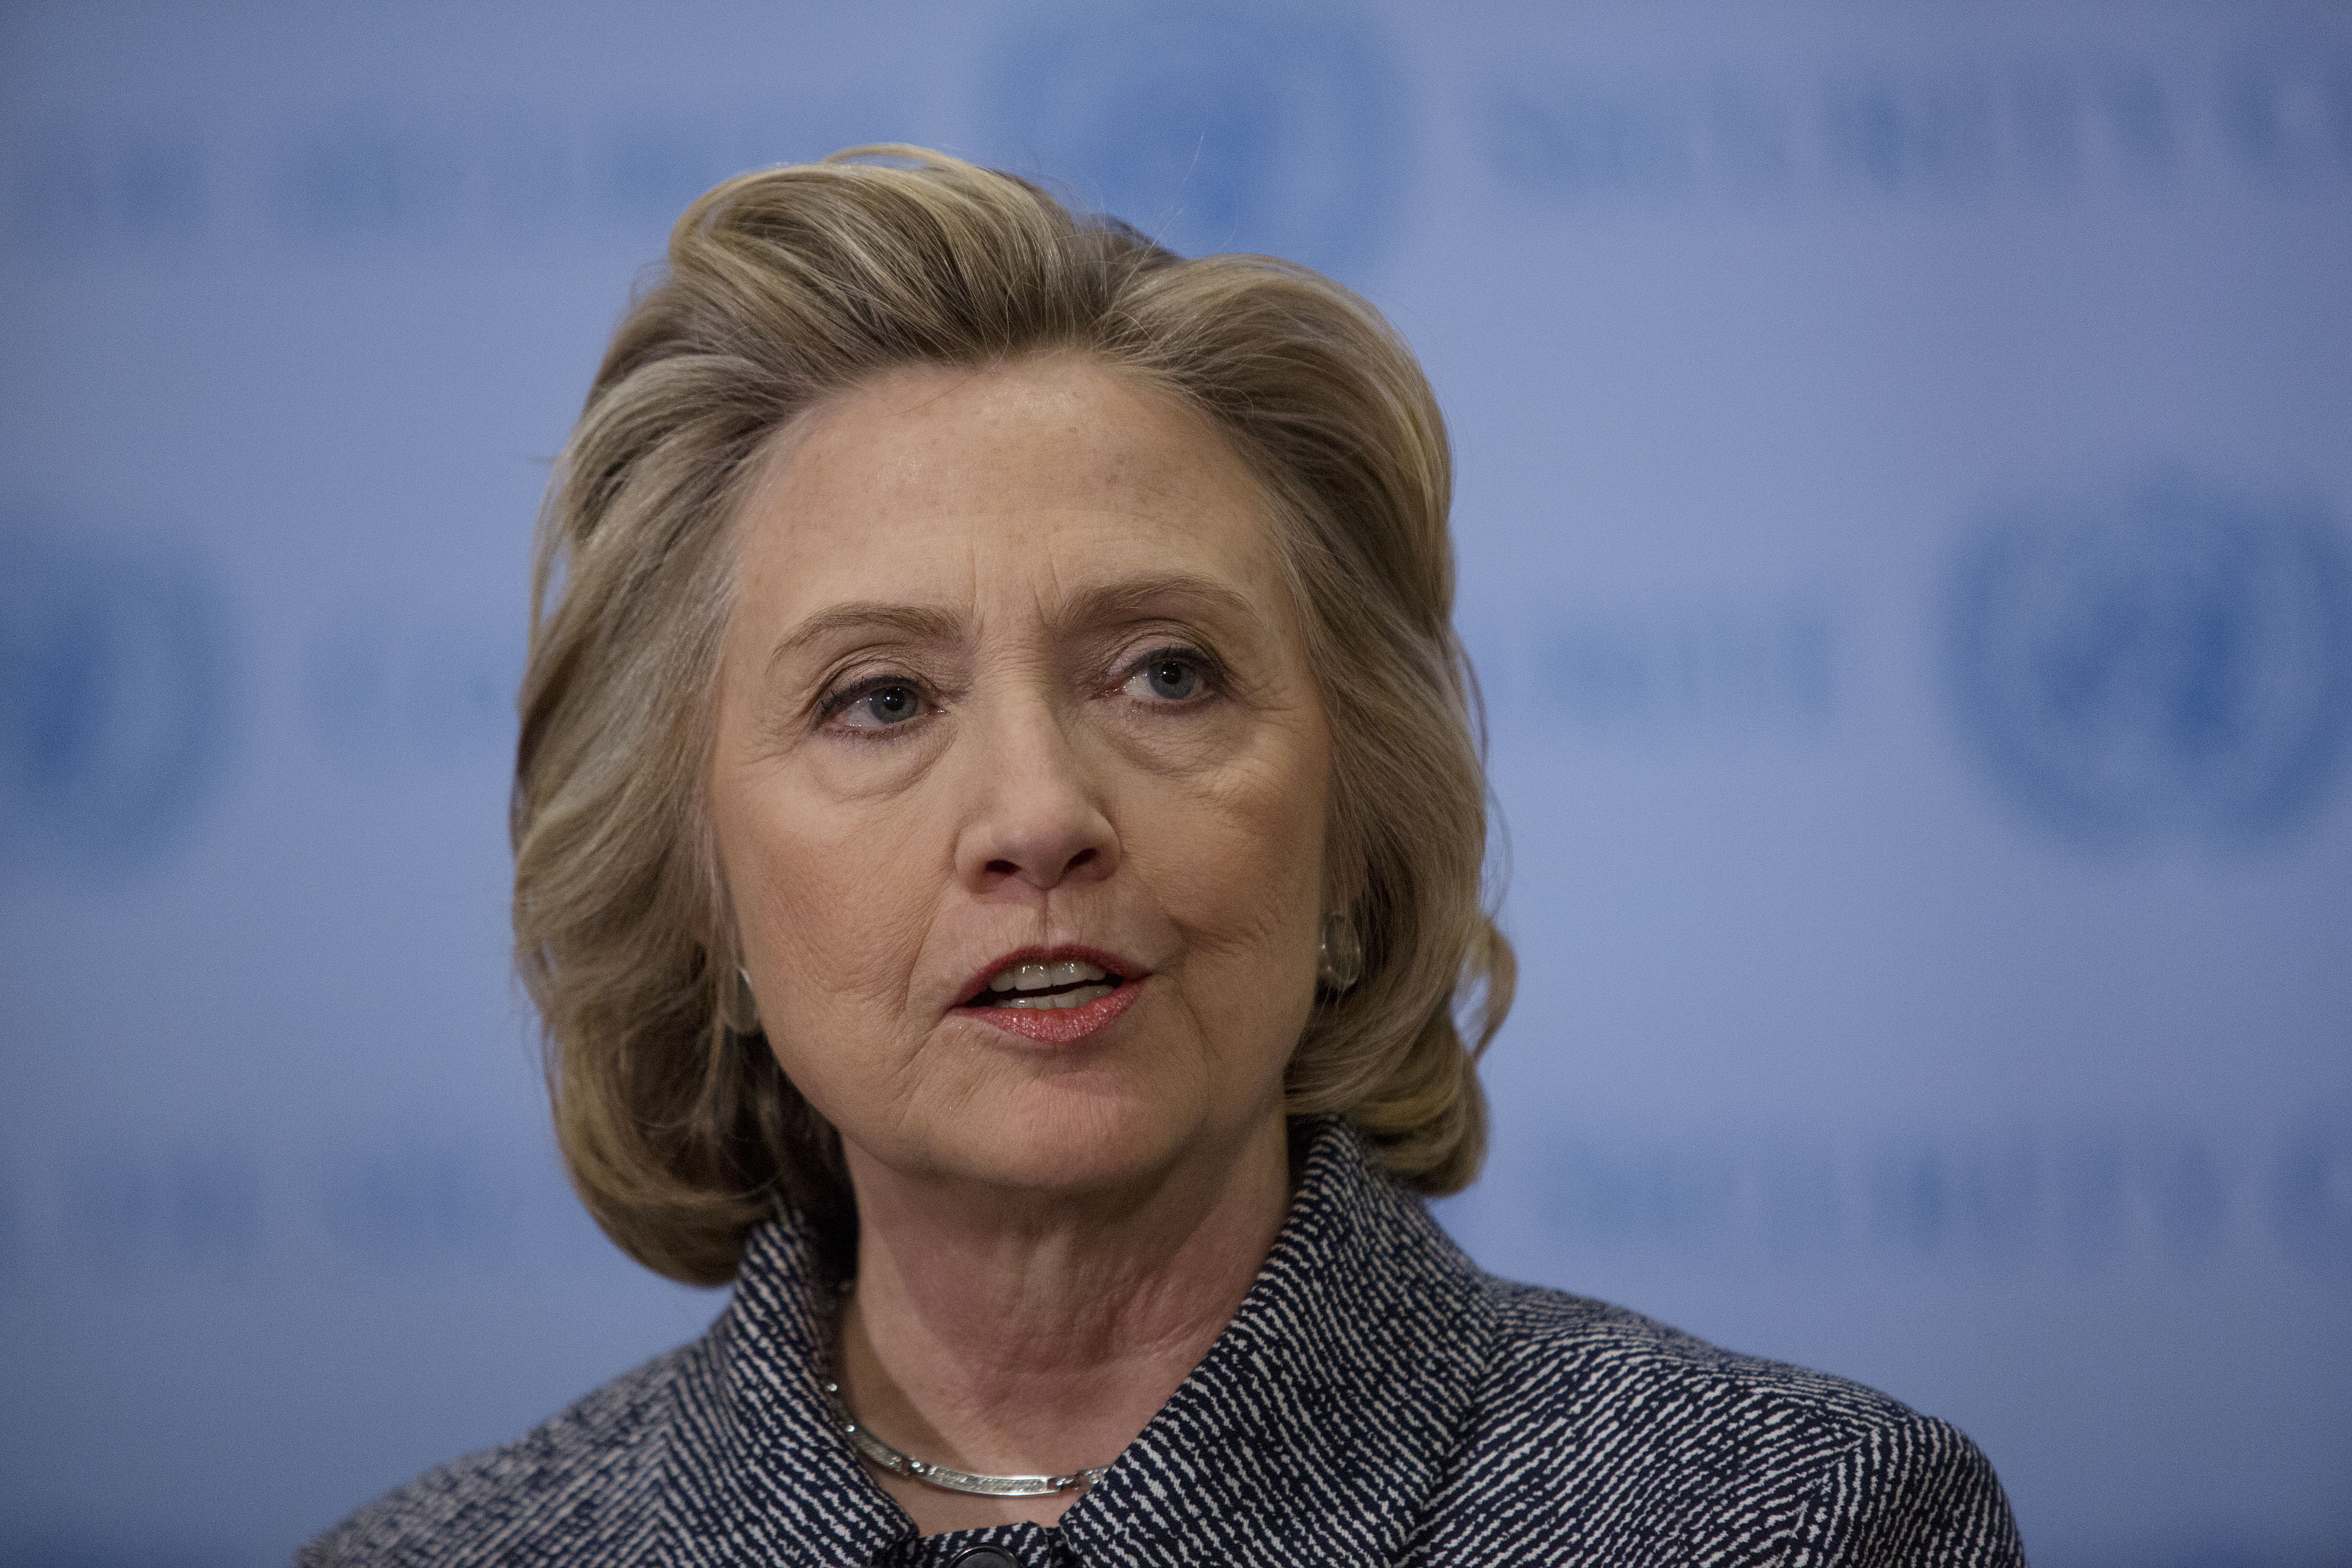 Hillary Clinton Says Her Use Of Private E-Mail Was Legal